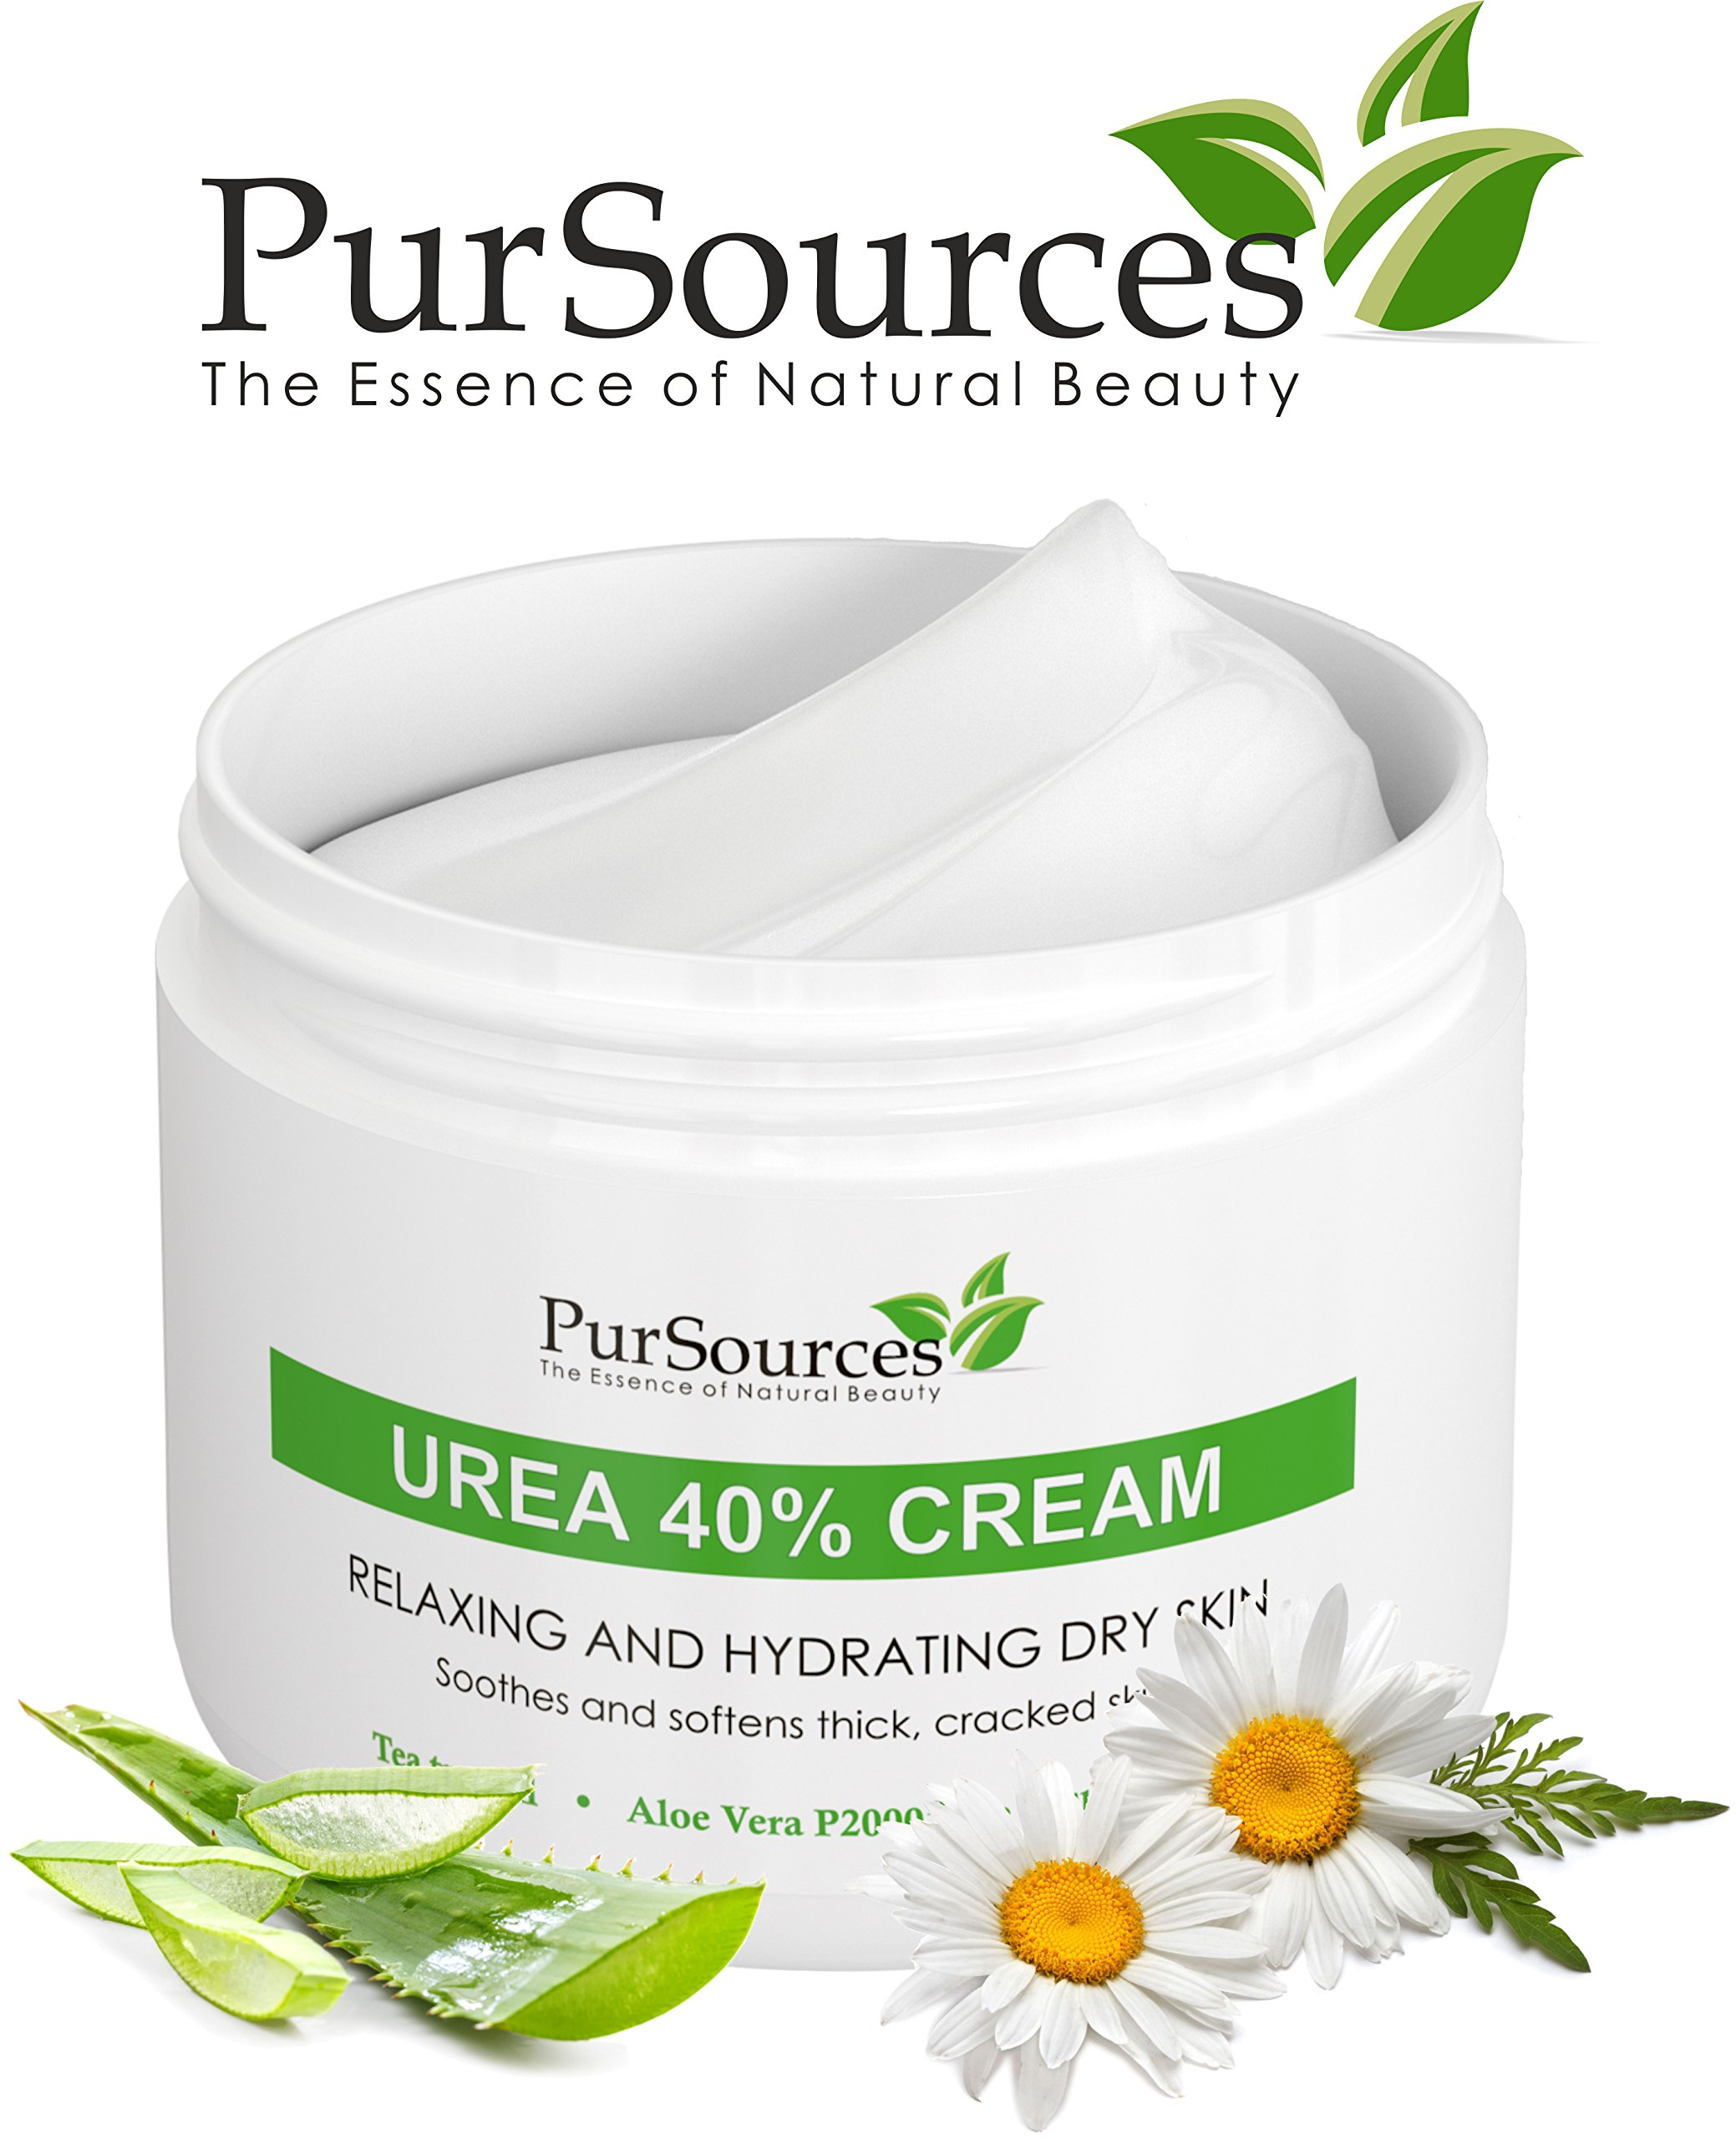 PurSources Urea 40% Foot Cream - No Pumice Stone - Best Callus Remover - Moisturizes and Rehydrates Feet, Knees & Elbows - For Thick, Cracked, Rough, Dead & Dry Skin - 4 oz - 100% Money Back Guarantee by PurSources